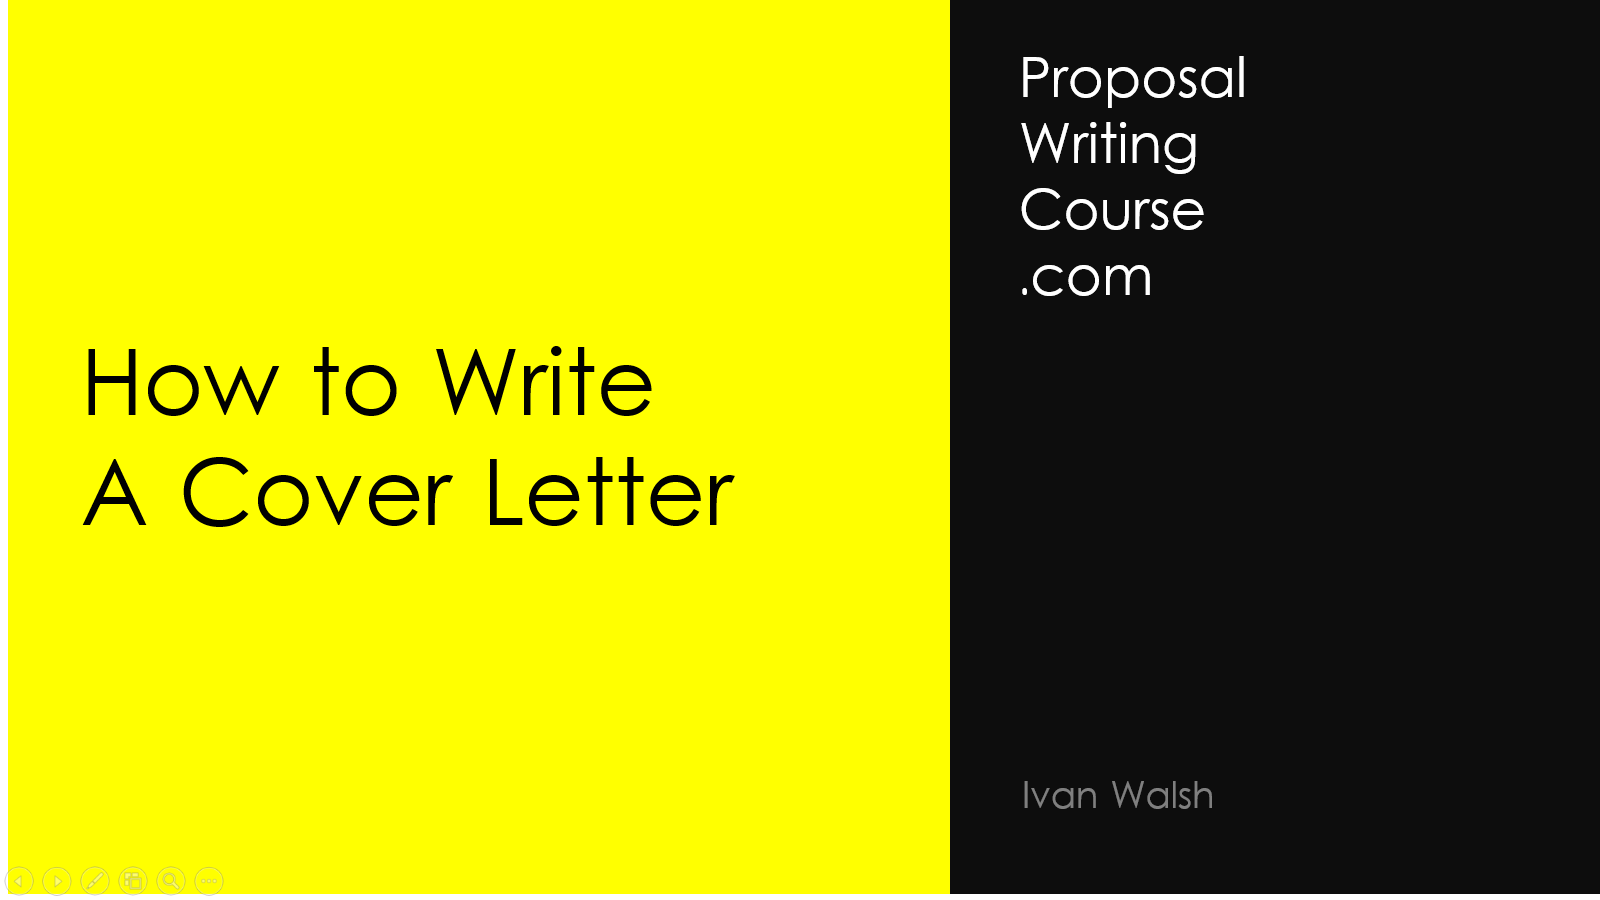 bidding for proposals how to write the cover letter proposal how to write cover letter